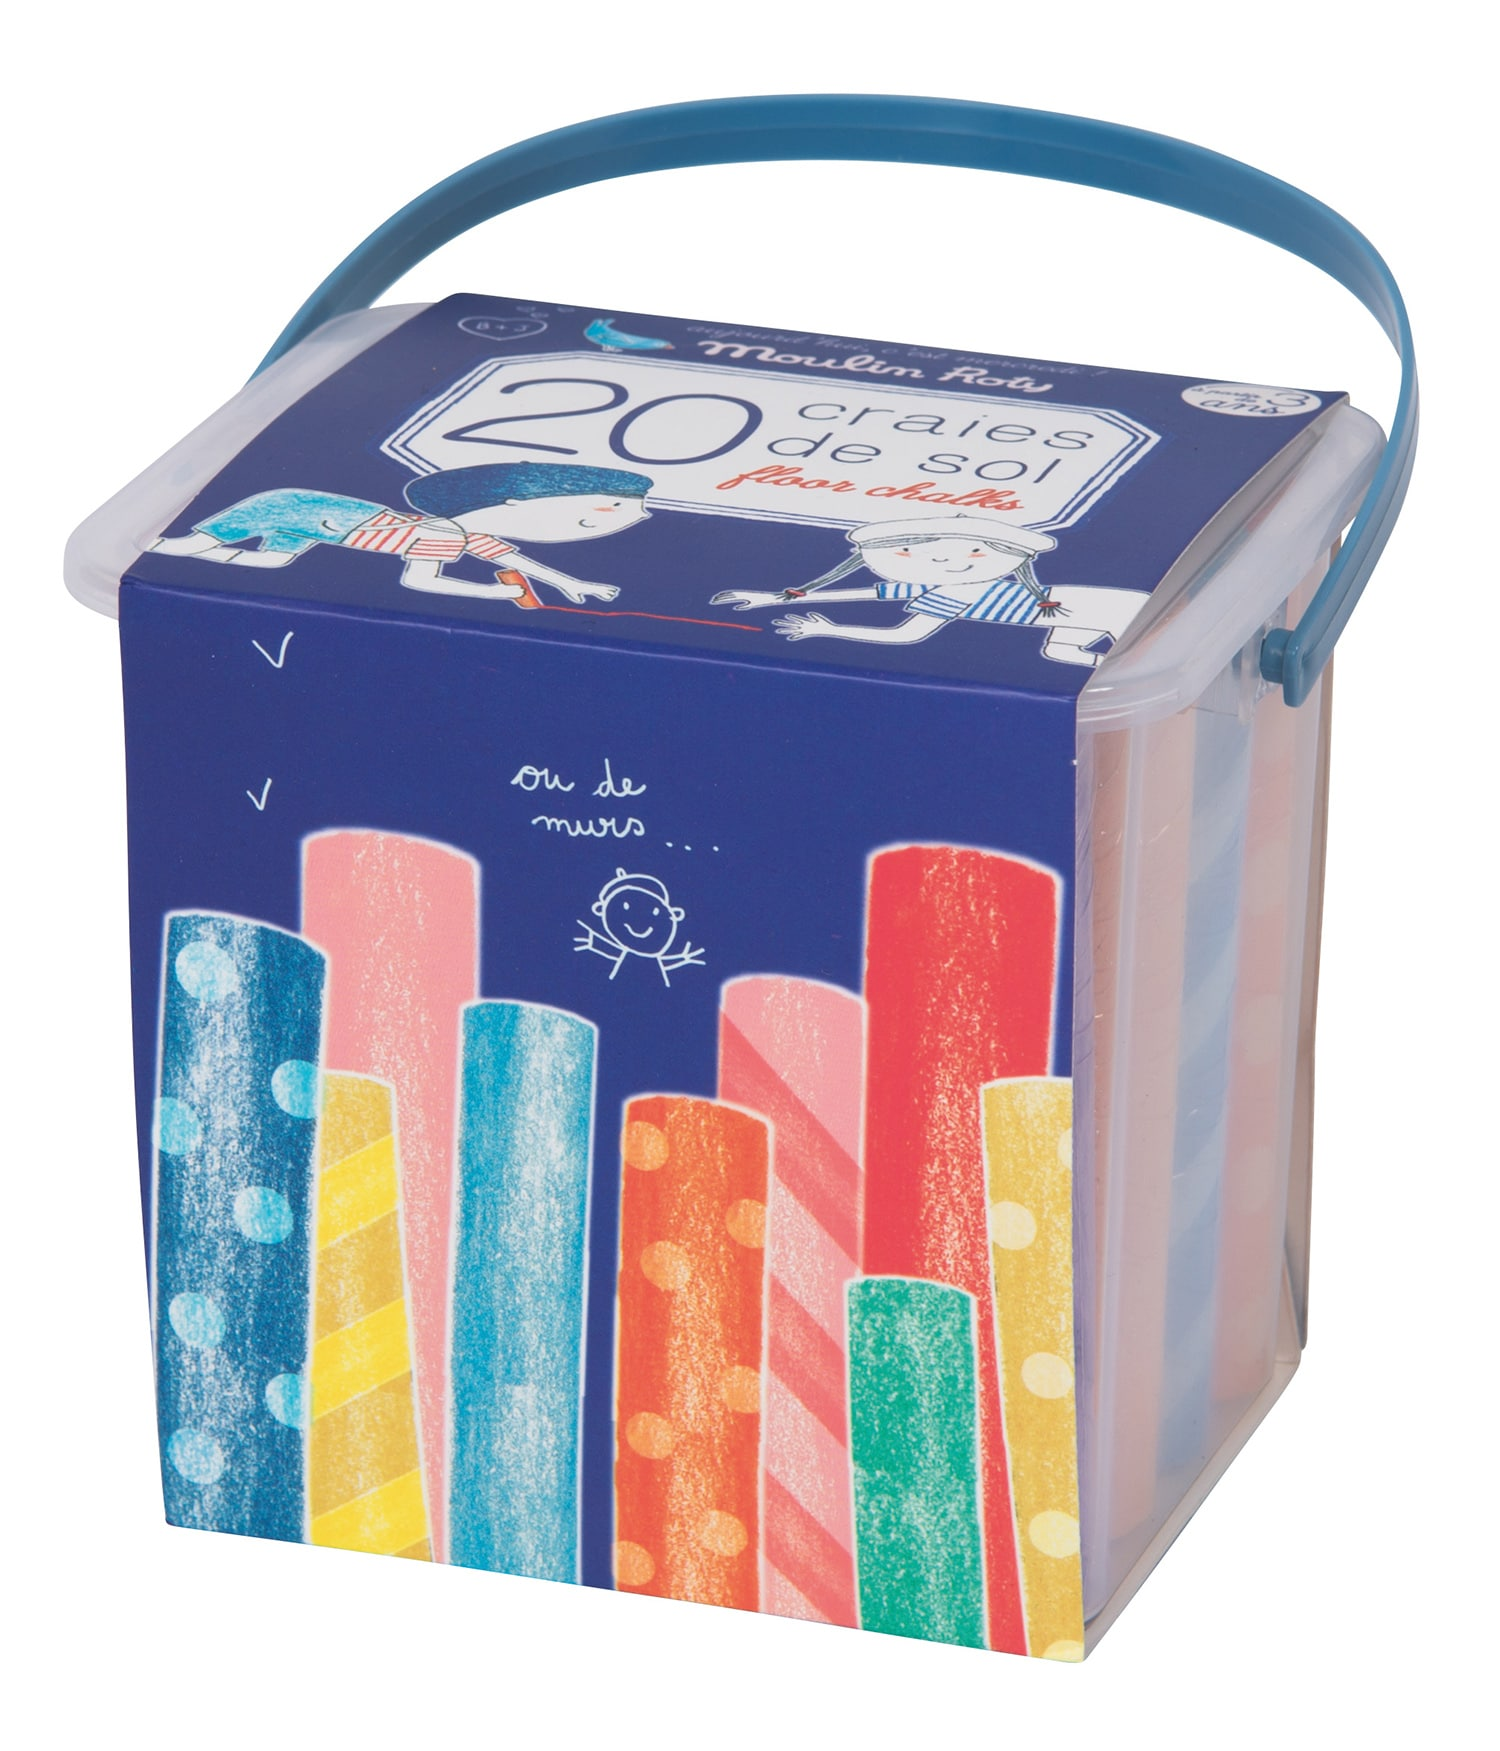 Pack of 20 assorted colour floor chalks, with patterns and marbled sticks. Moulin Roty 713 135